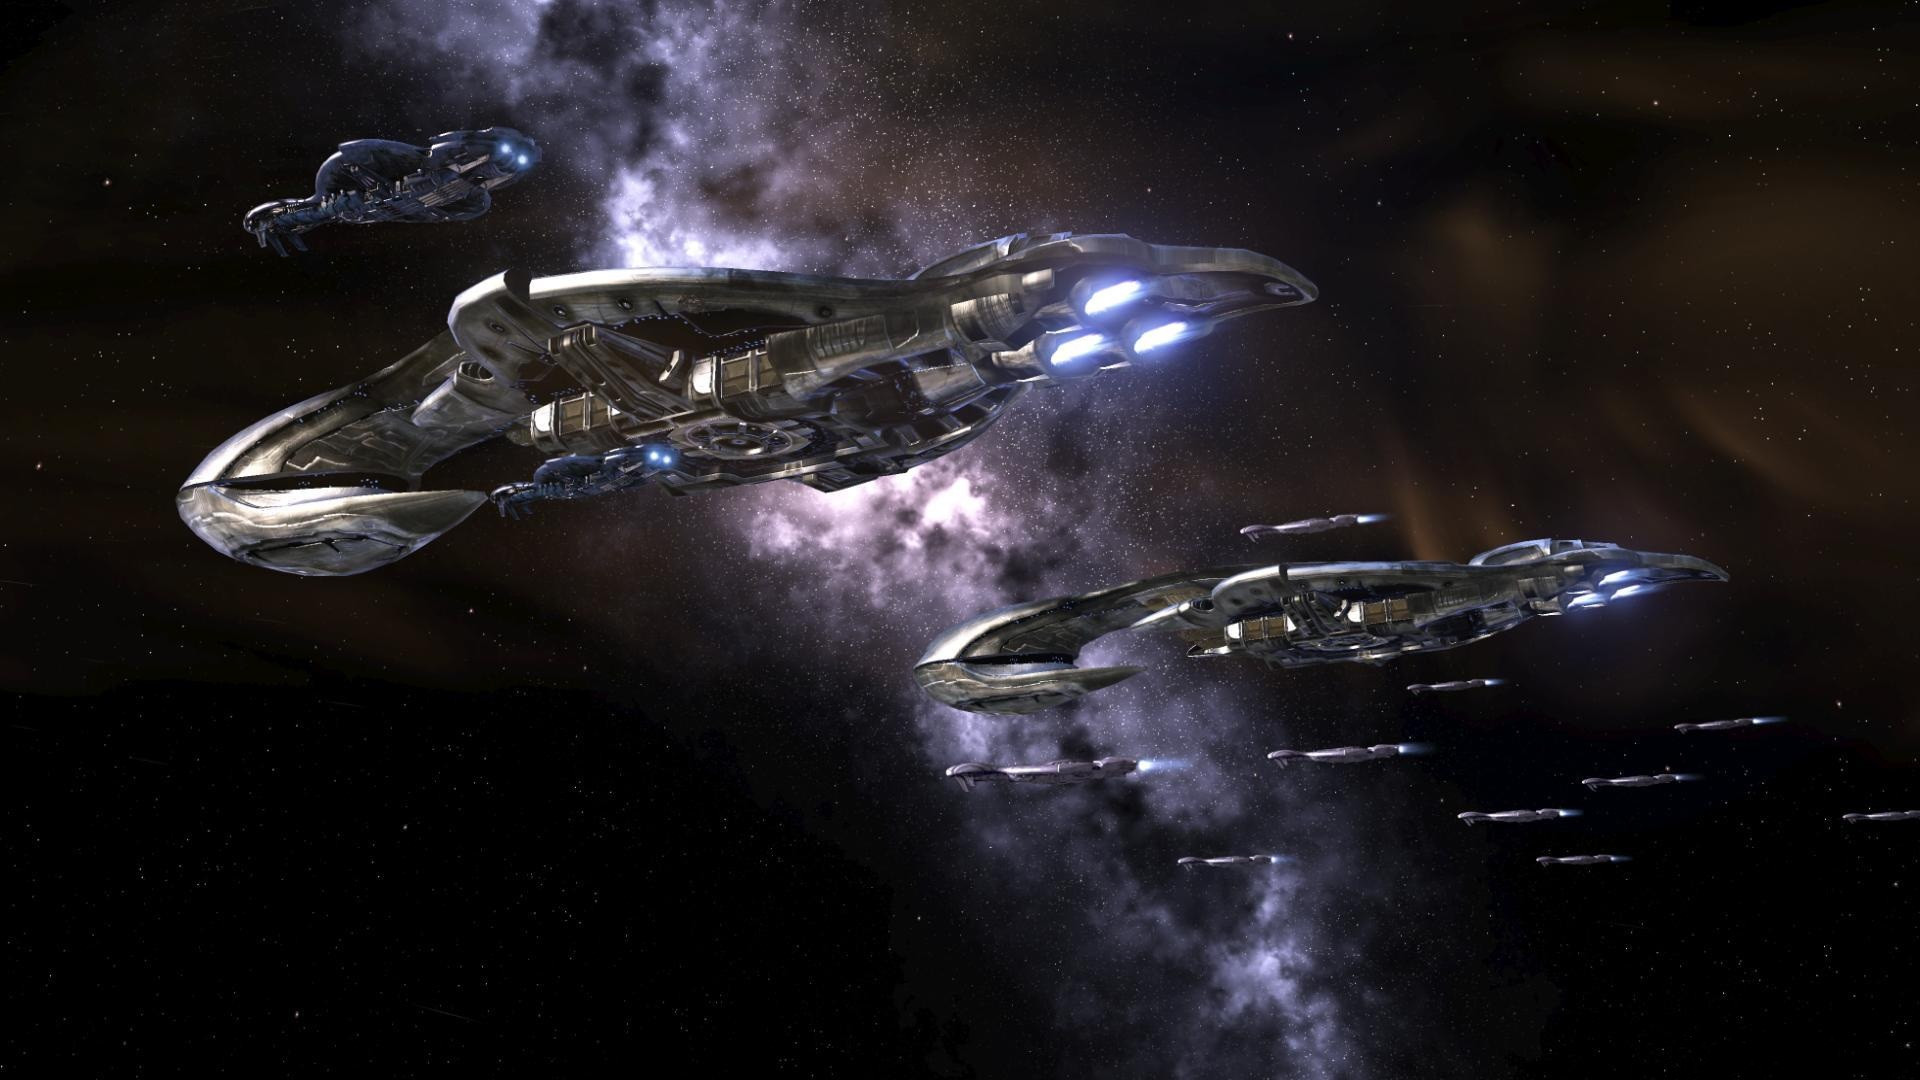 1920x1080 Where Can I Buy Wallpaper Remnants Beautiful Imperium Man Vs Unsc the  Covenant Ufp the Borg